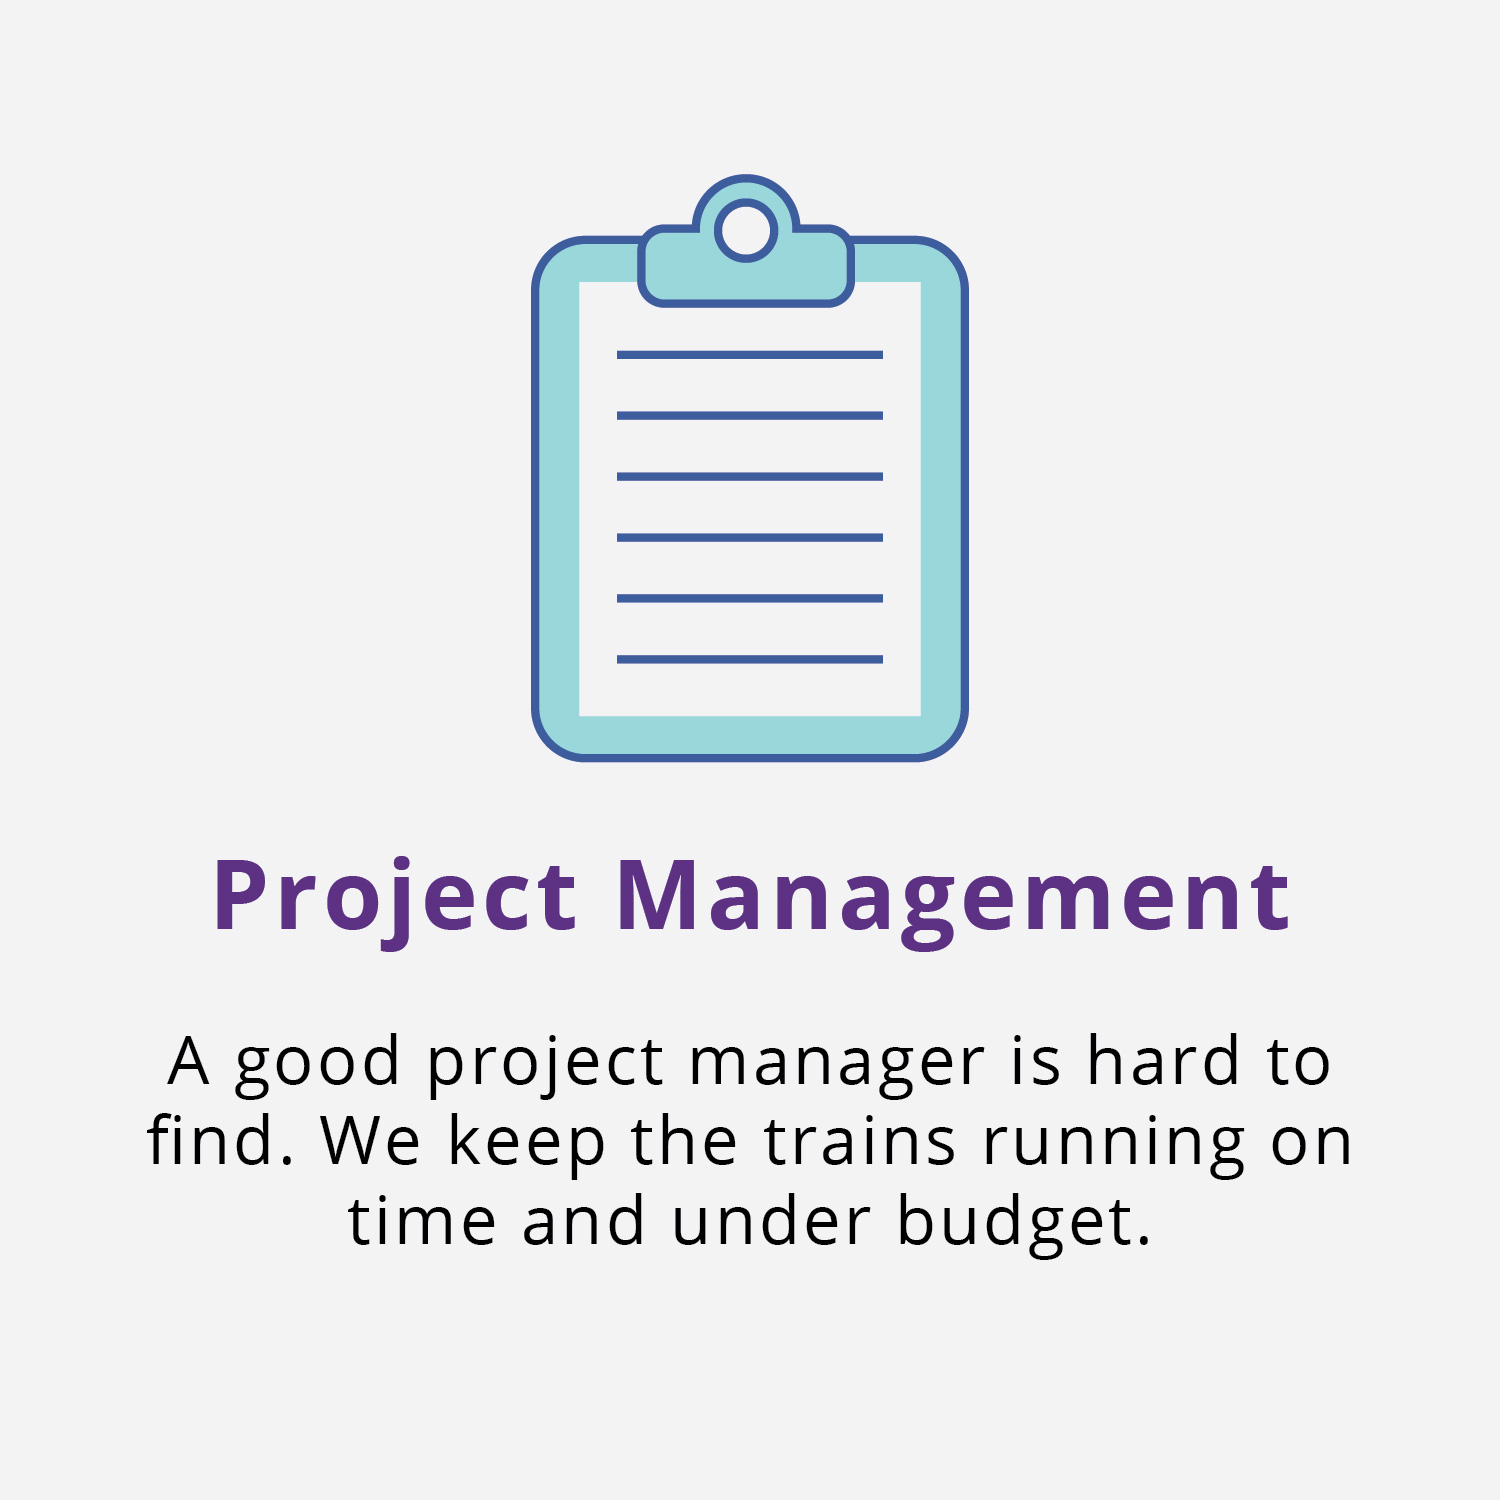 project manager-01.jpg